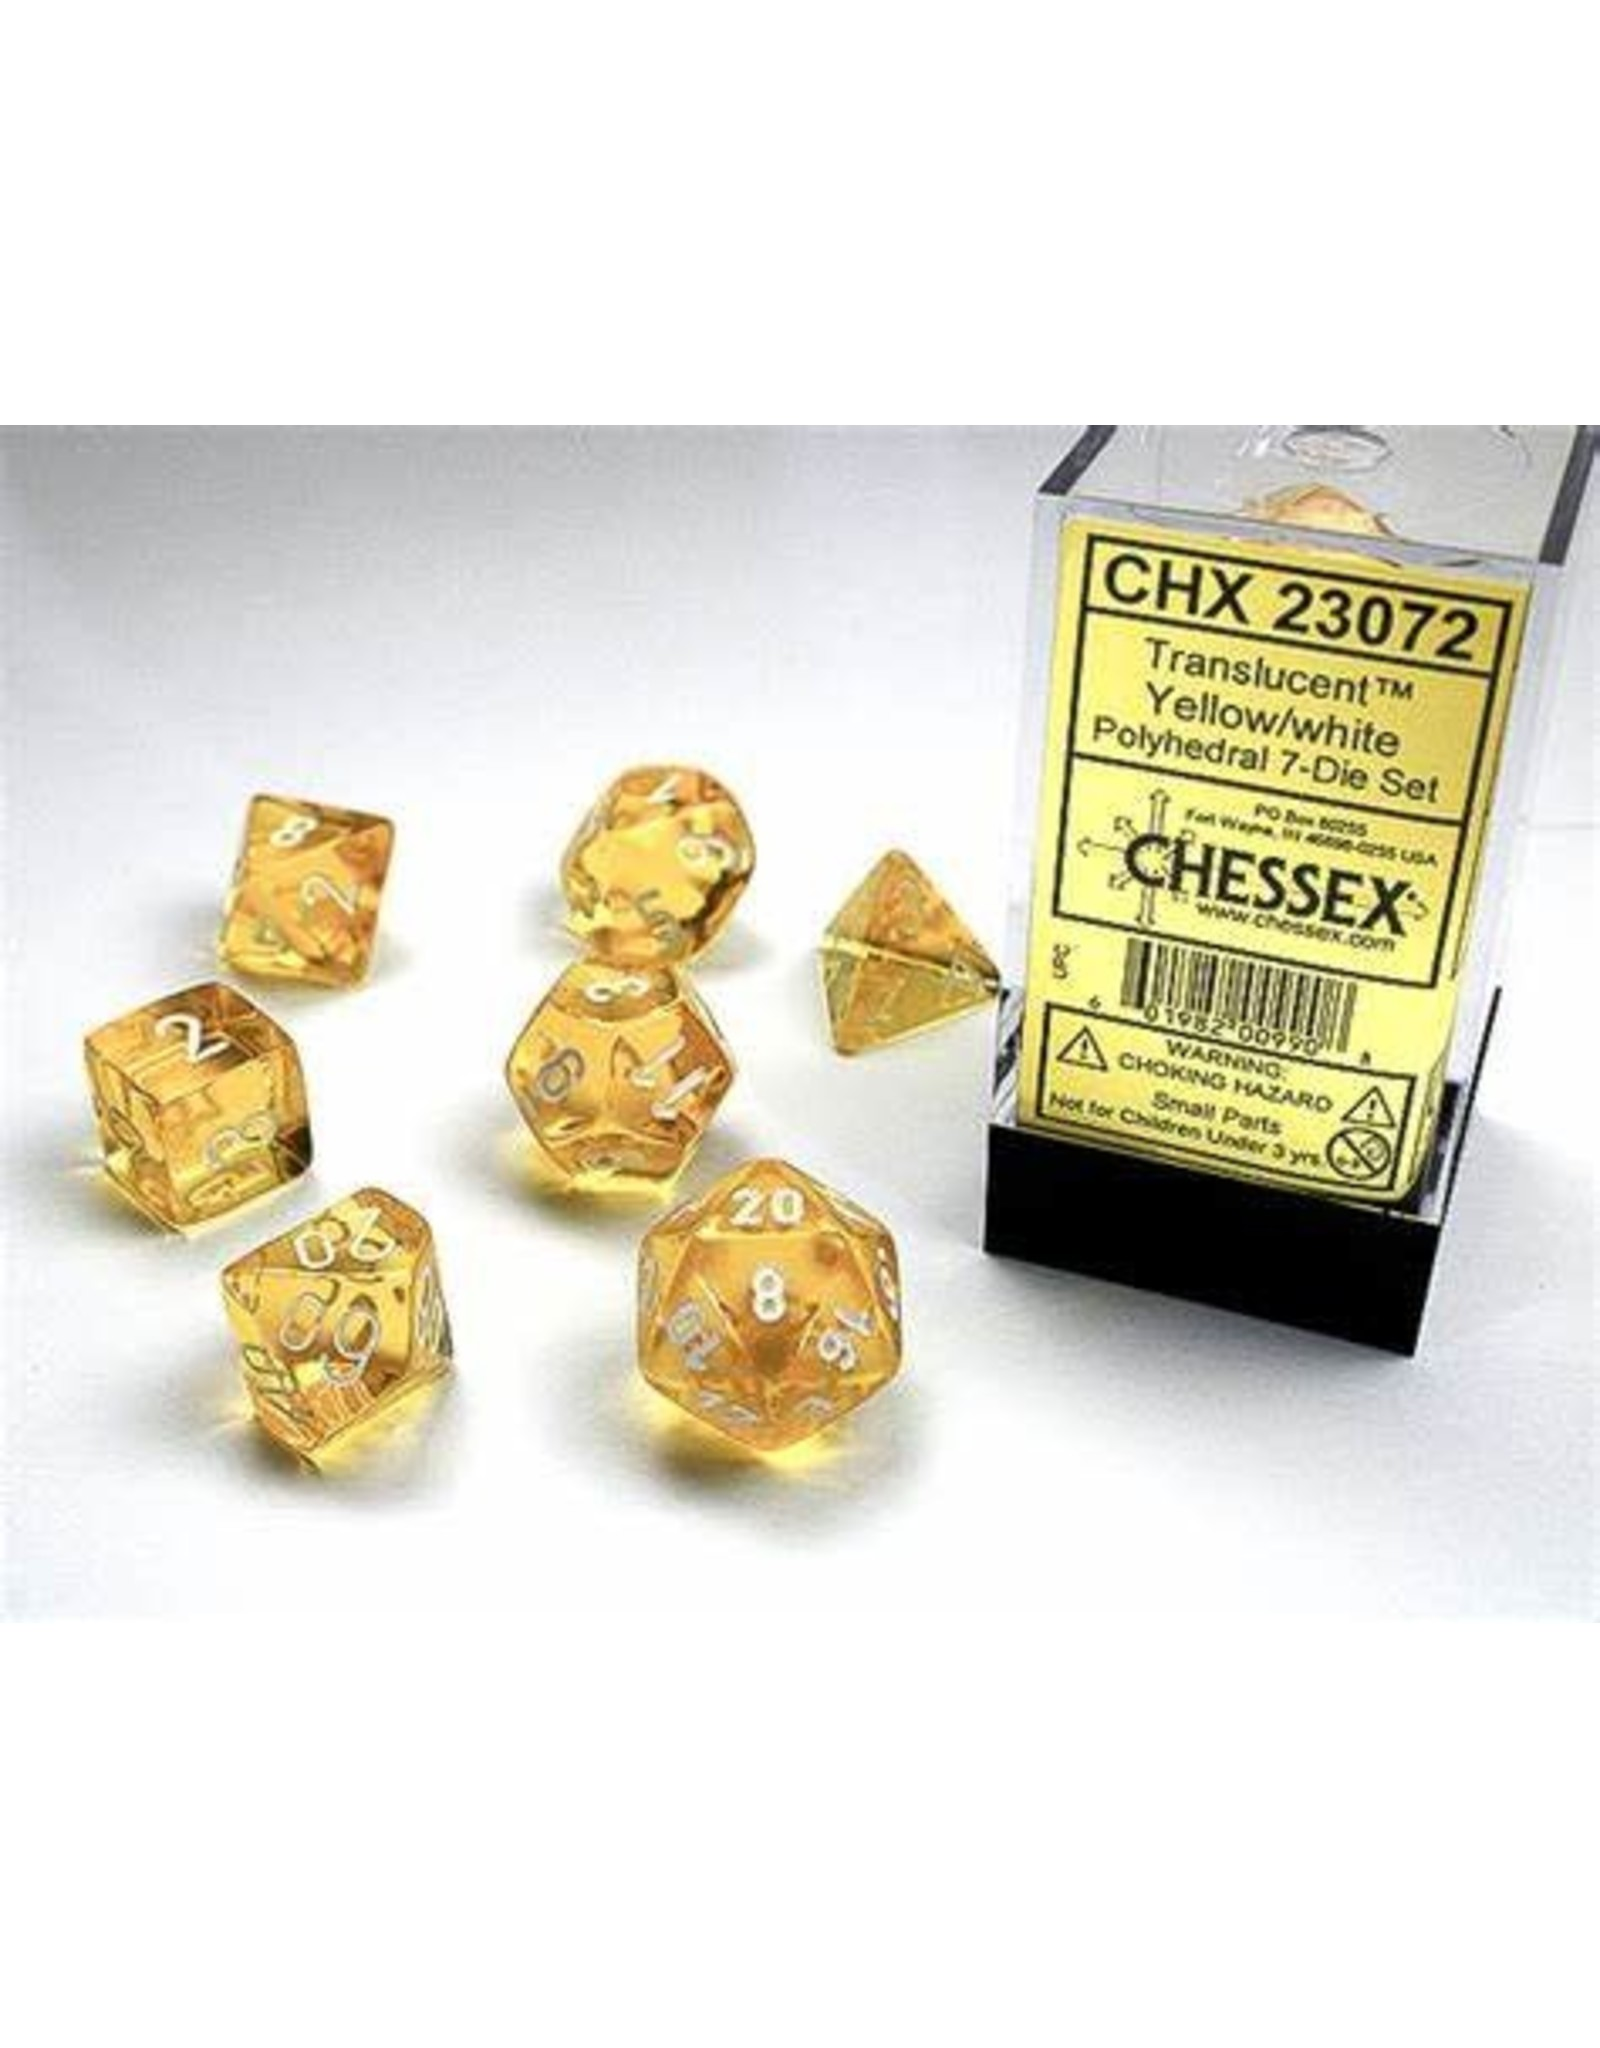 Chessex Chessex Translucent (7pc Set)